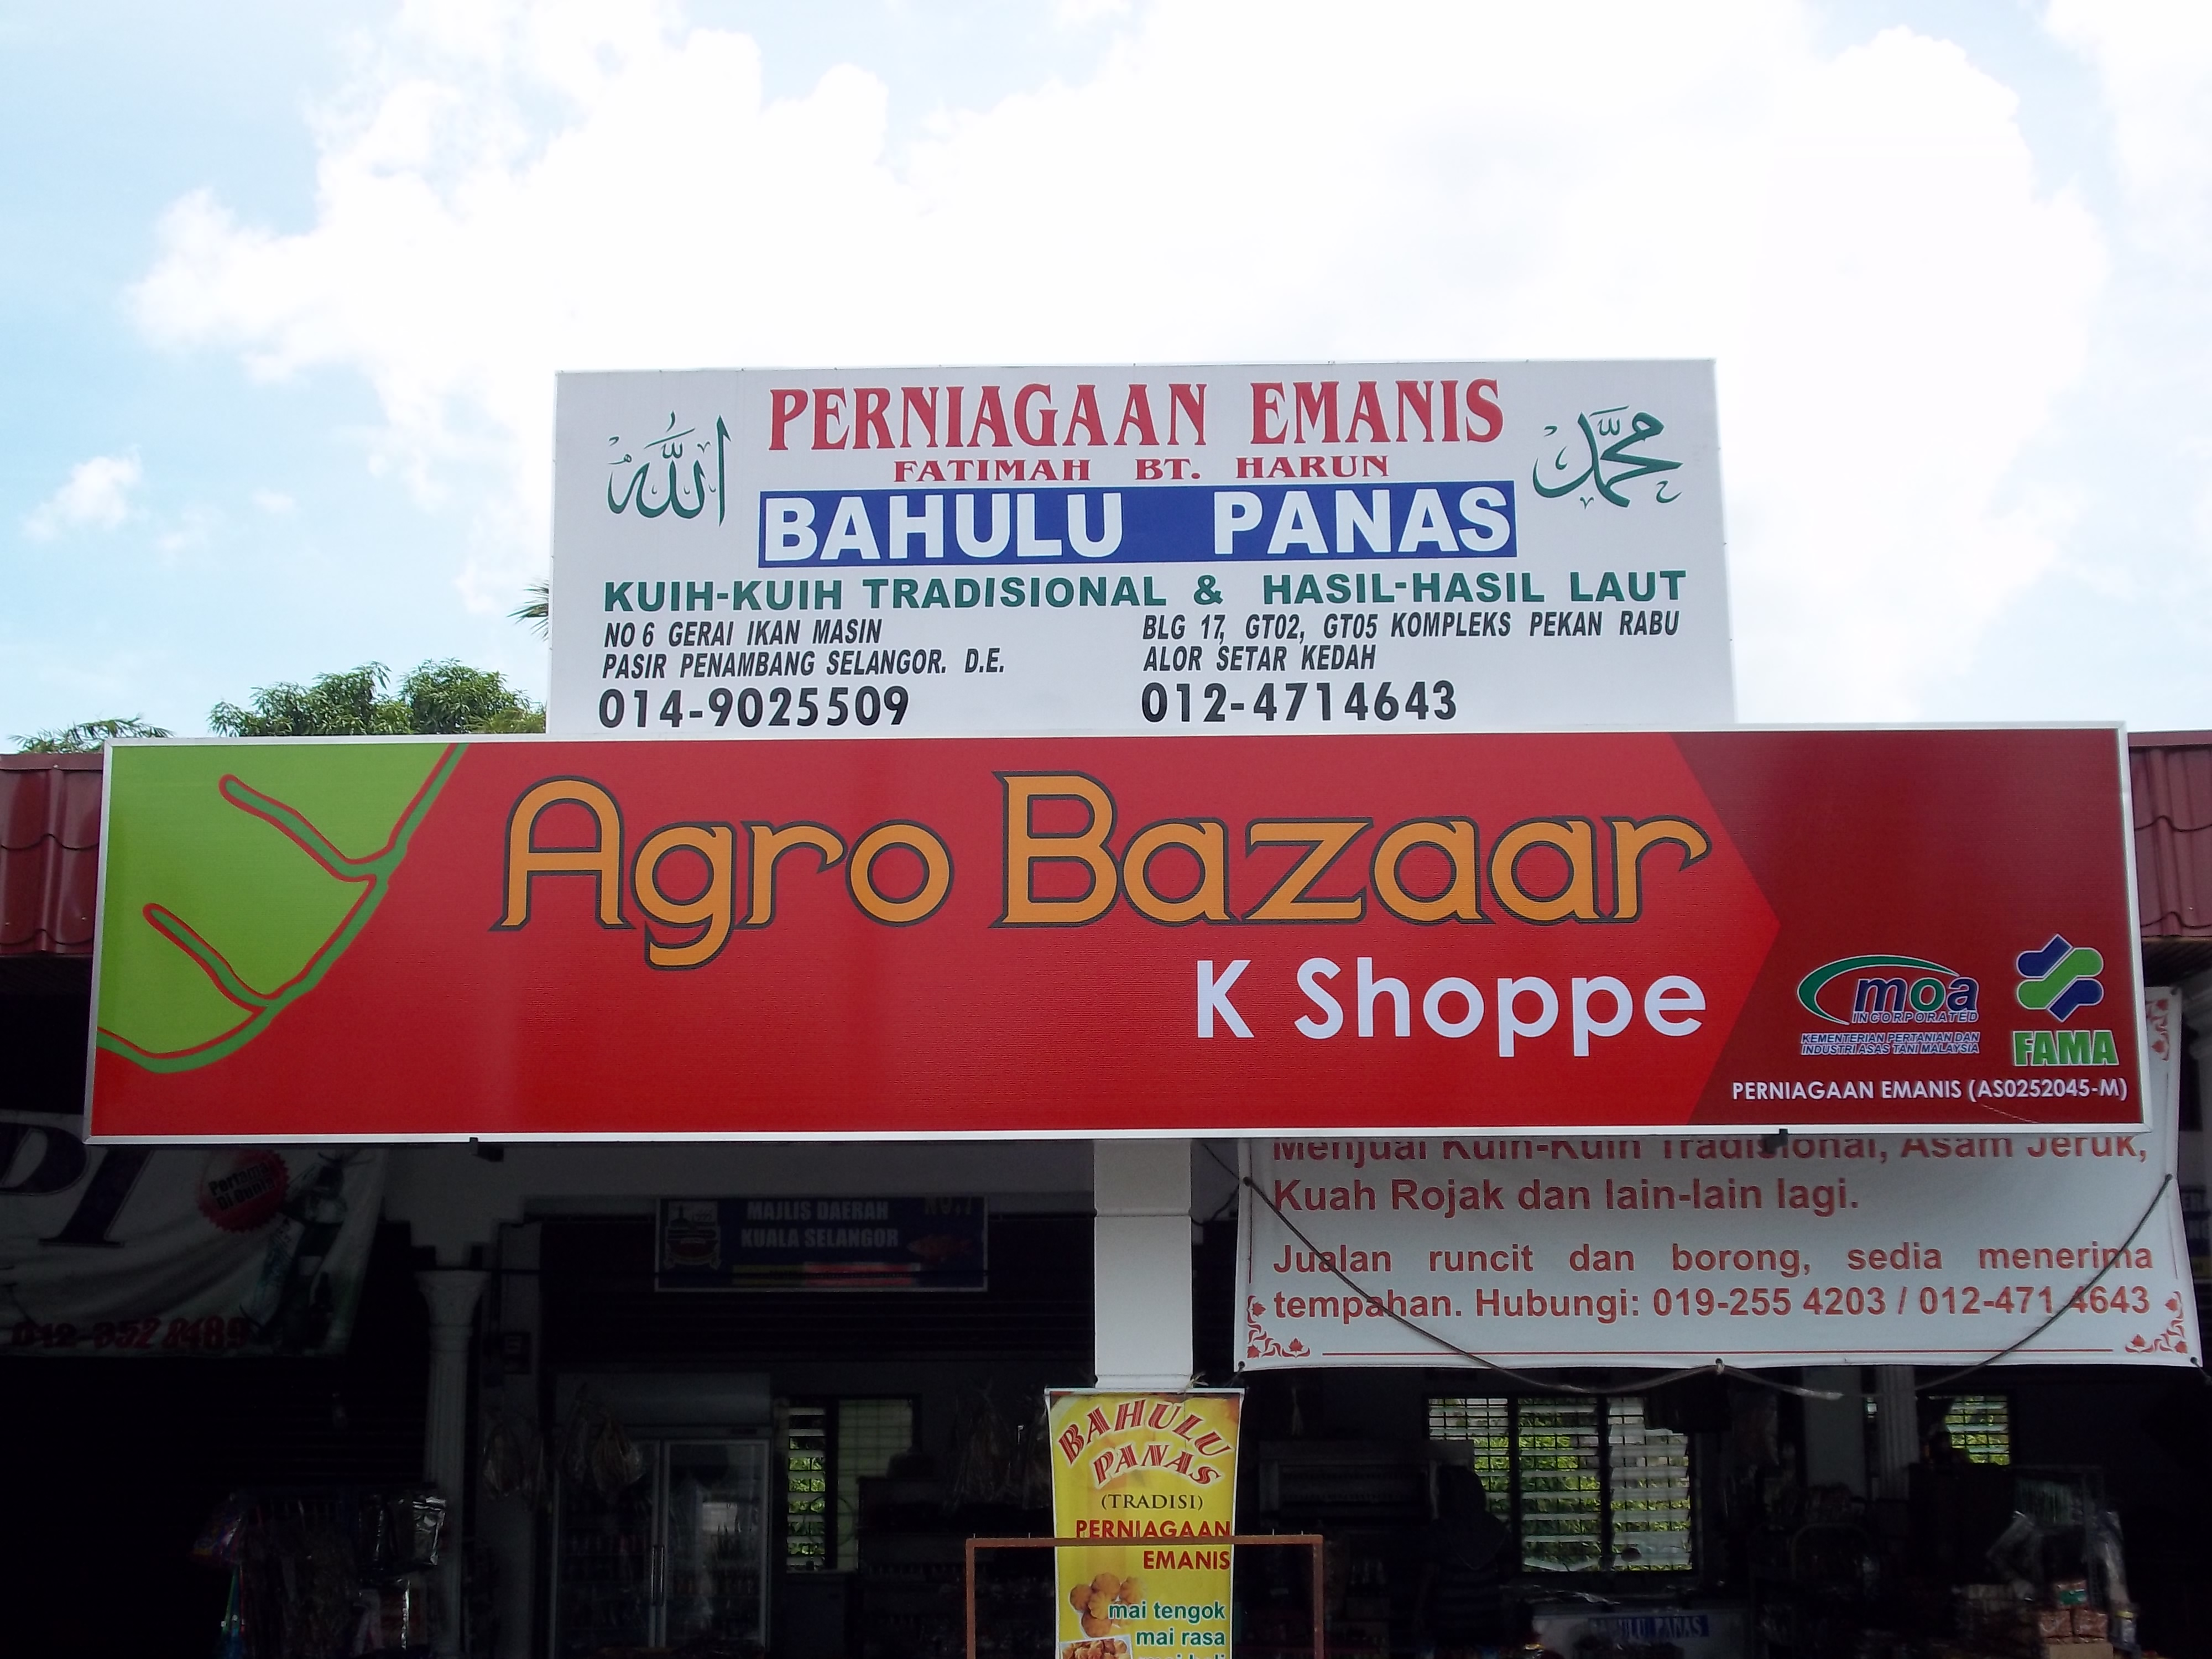 Polycarbonate signboard